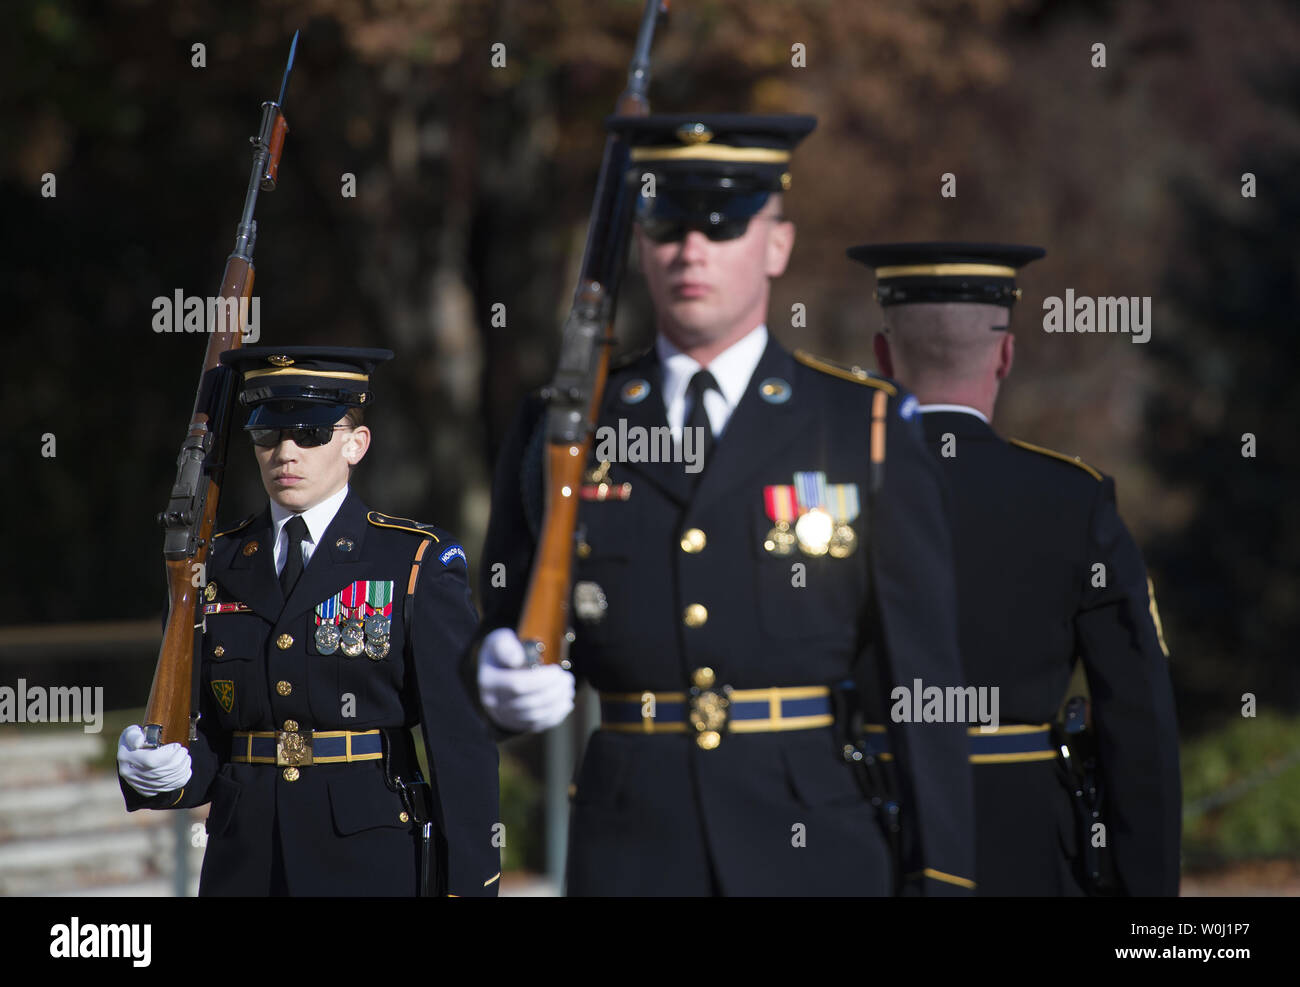 Sgt. Ruth A. Hanks, who is training to receive her Tomb Badge, participates in the changing of the guard at the Tomb of the Unkowns at Arlington National Cemetery in Arlington, Va., November 11, 2015.  There have been only 3 female Tomb Guards who have earned their Tomb Badge.  Photo by Molly Riley/UPI - Stock Image